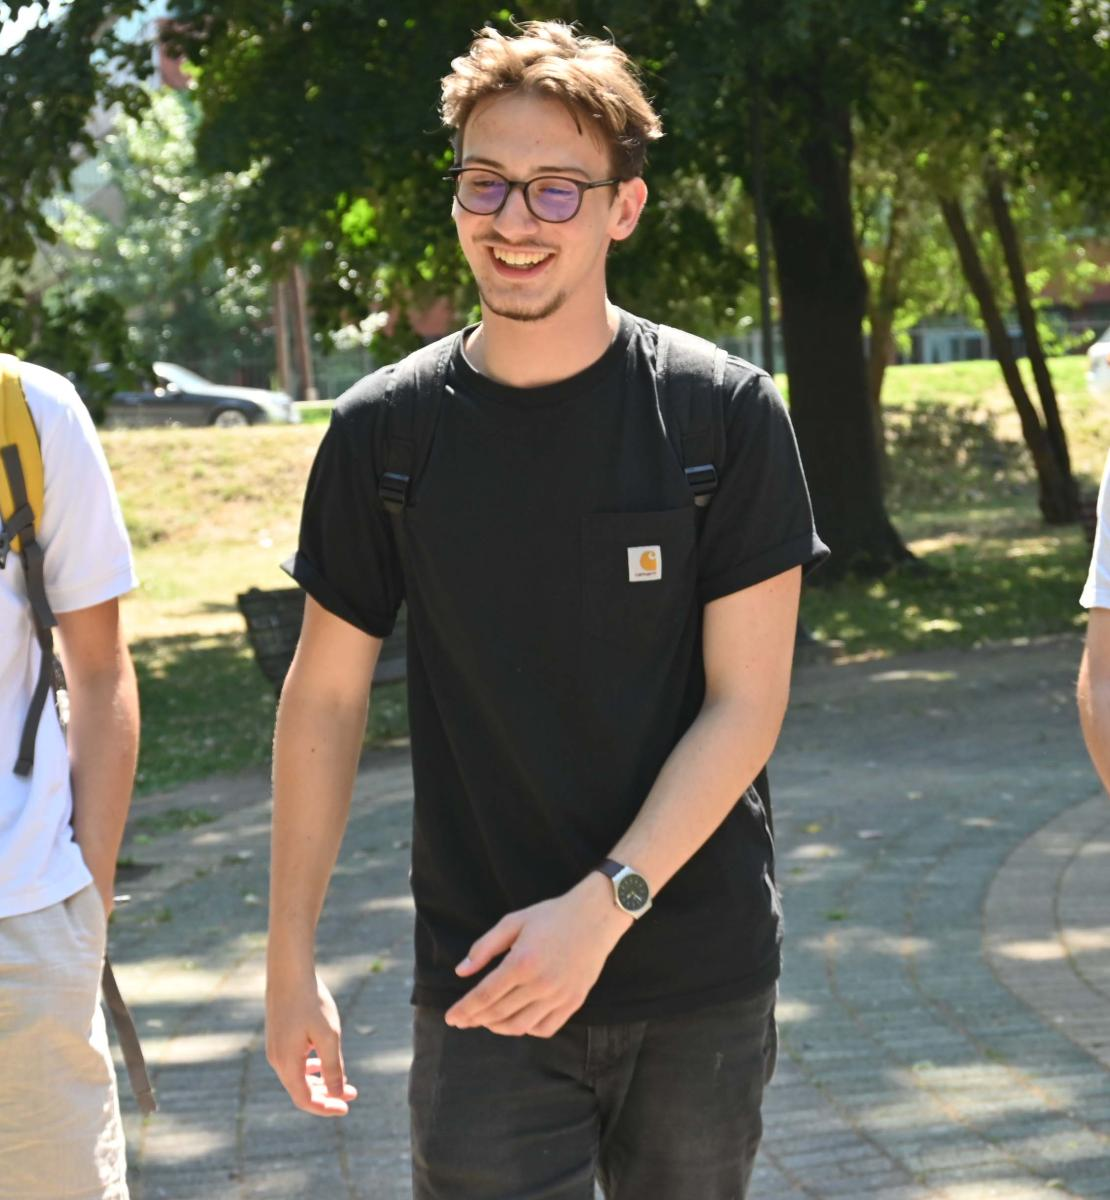 Three young men, Teo (left), Orhan (middle) and Boris (right), walk happily together in a park.